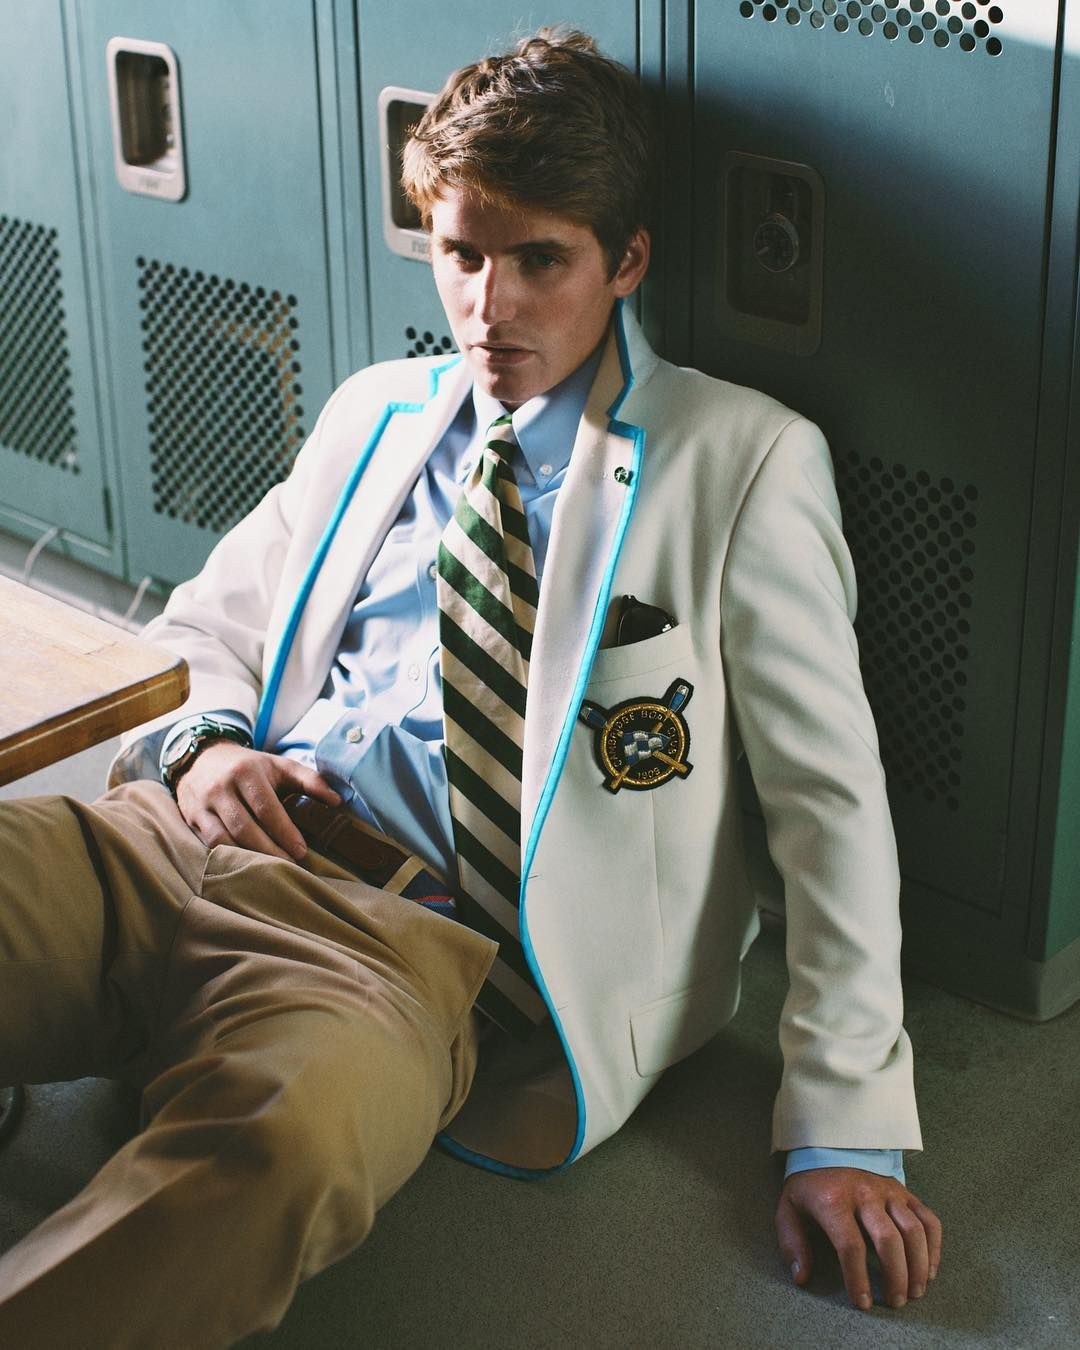 From The Book That Inspired The Brand Rowing Blazers By Jack Carlson Rowingblazers Preppy Mens Fashion Preppy Boys Rowing Blazers